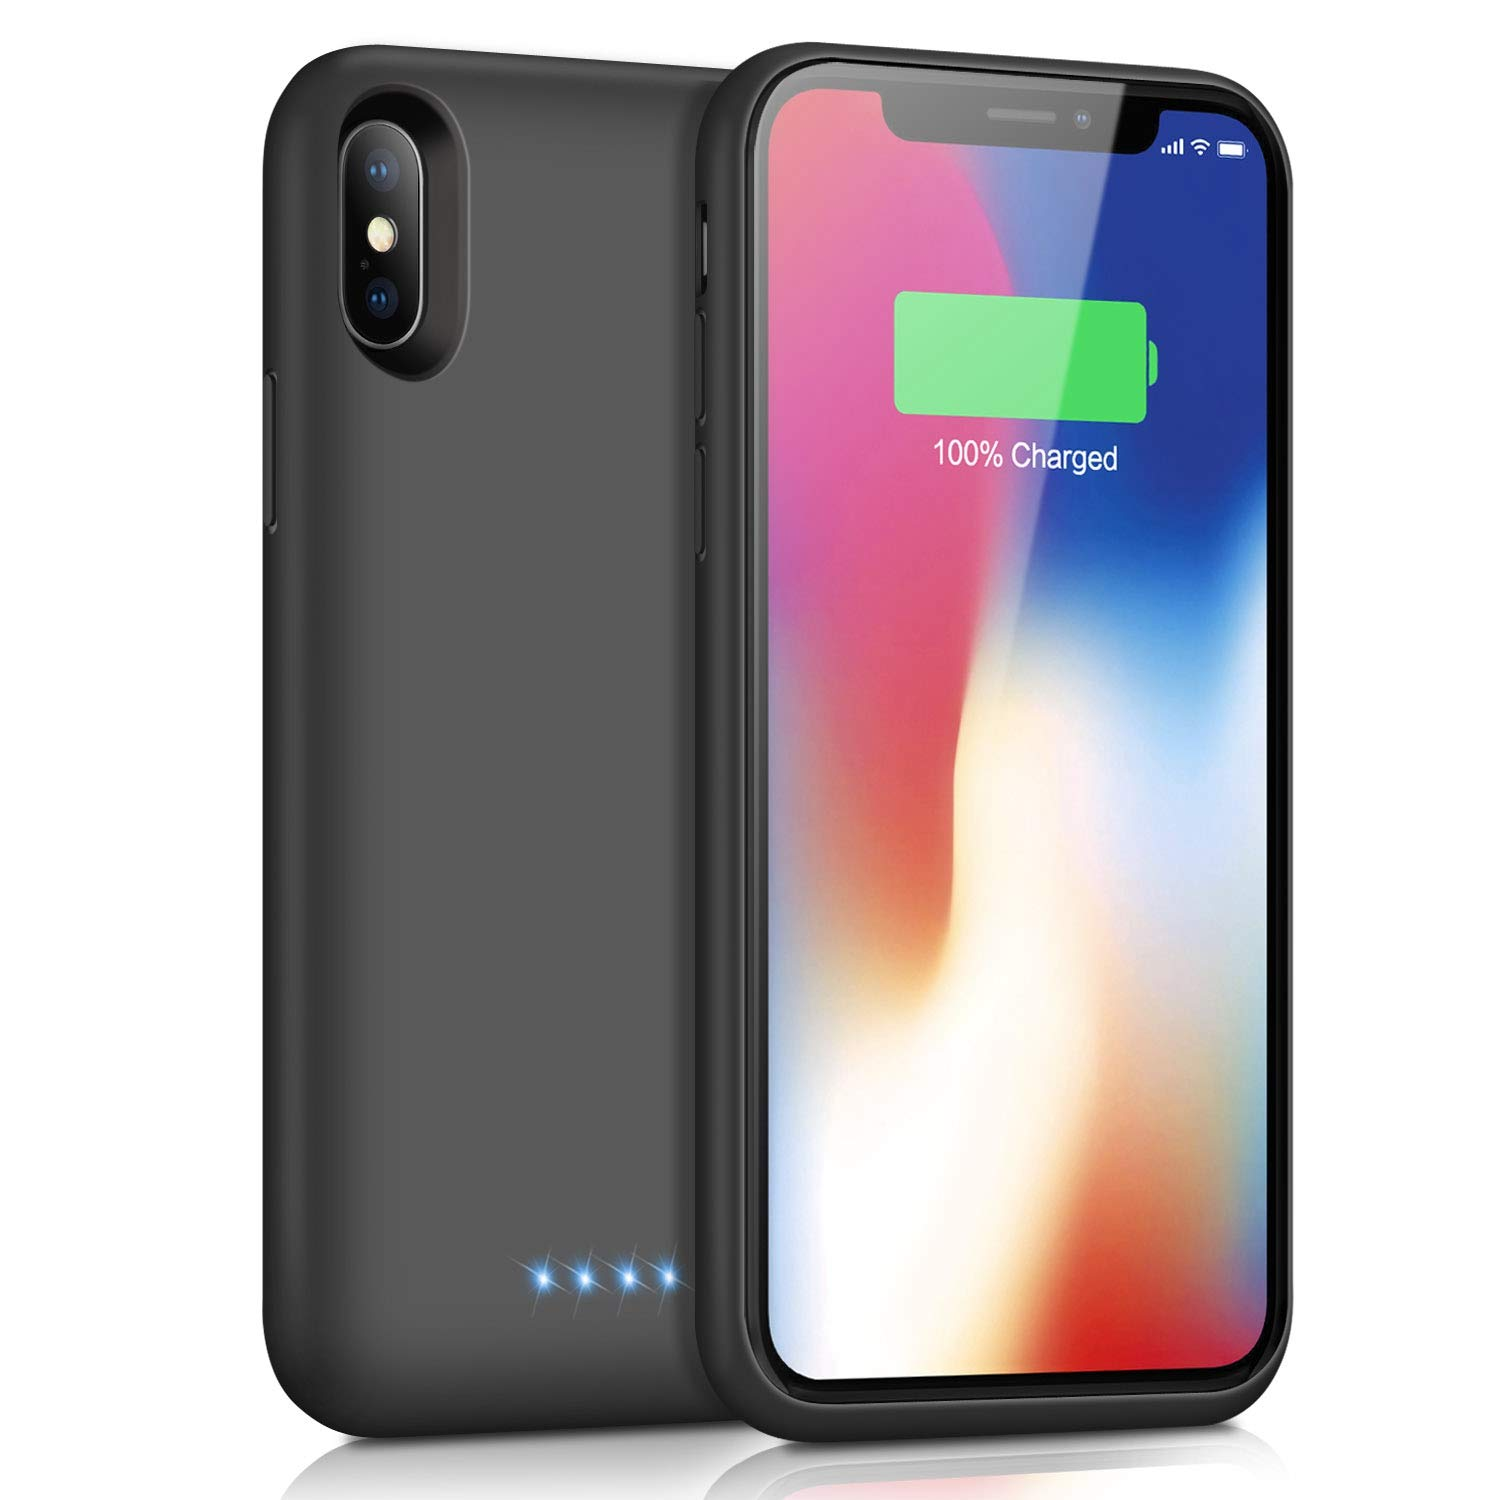 Battery Case for iPhone X/Xs, [6500mAh] Xooparc Protective Portable Charging Case Rechargeable Extended Battery Pack for Apple iPhone Xs&X (5.8') Backup Power Bank Cover - Black by Xooparc (Image #1)